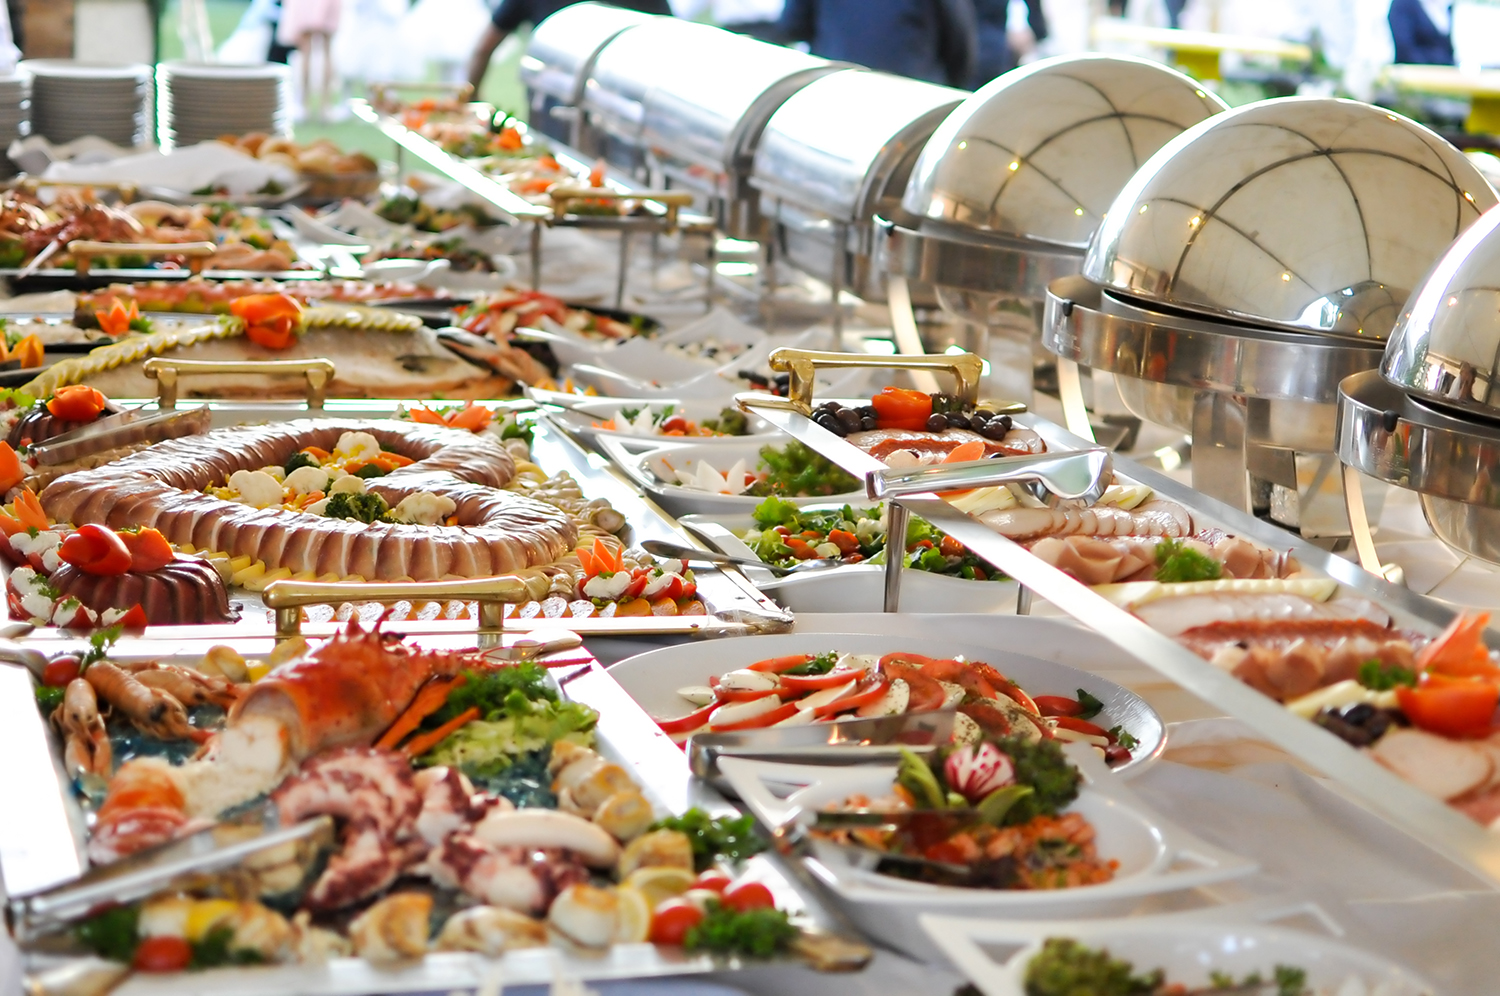 How to find adult human food buffet partyservice